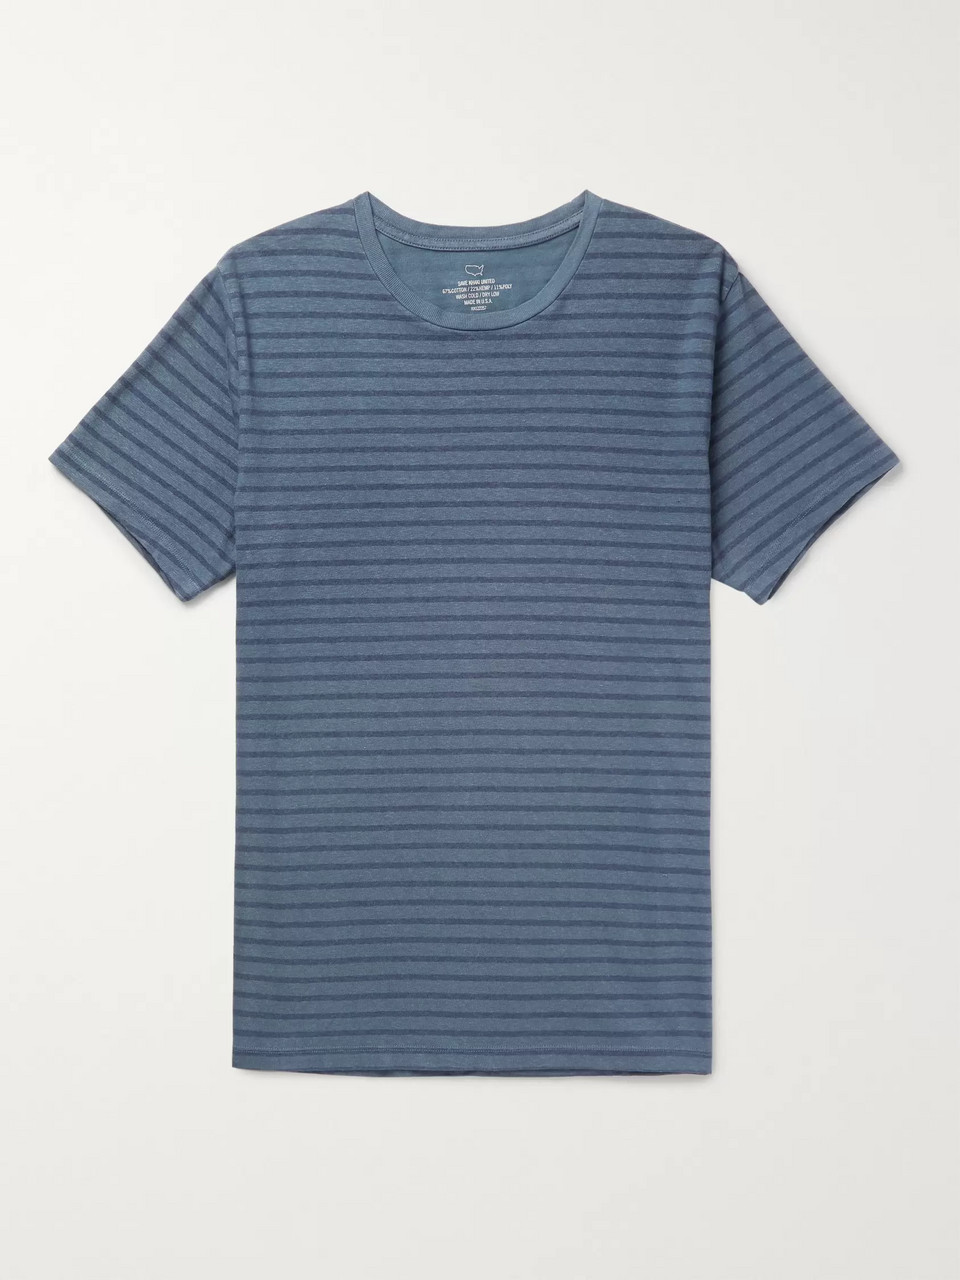 Save Khaki United Striped Cotton-Blend Jersey T-Shirt